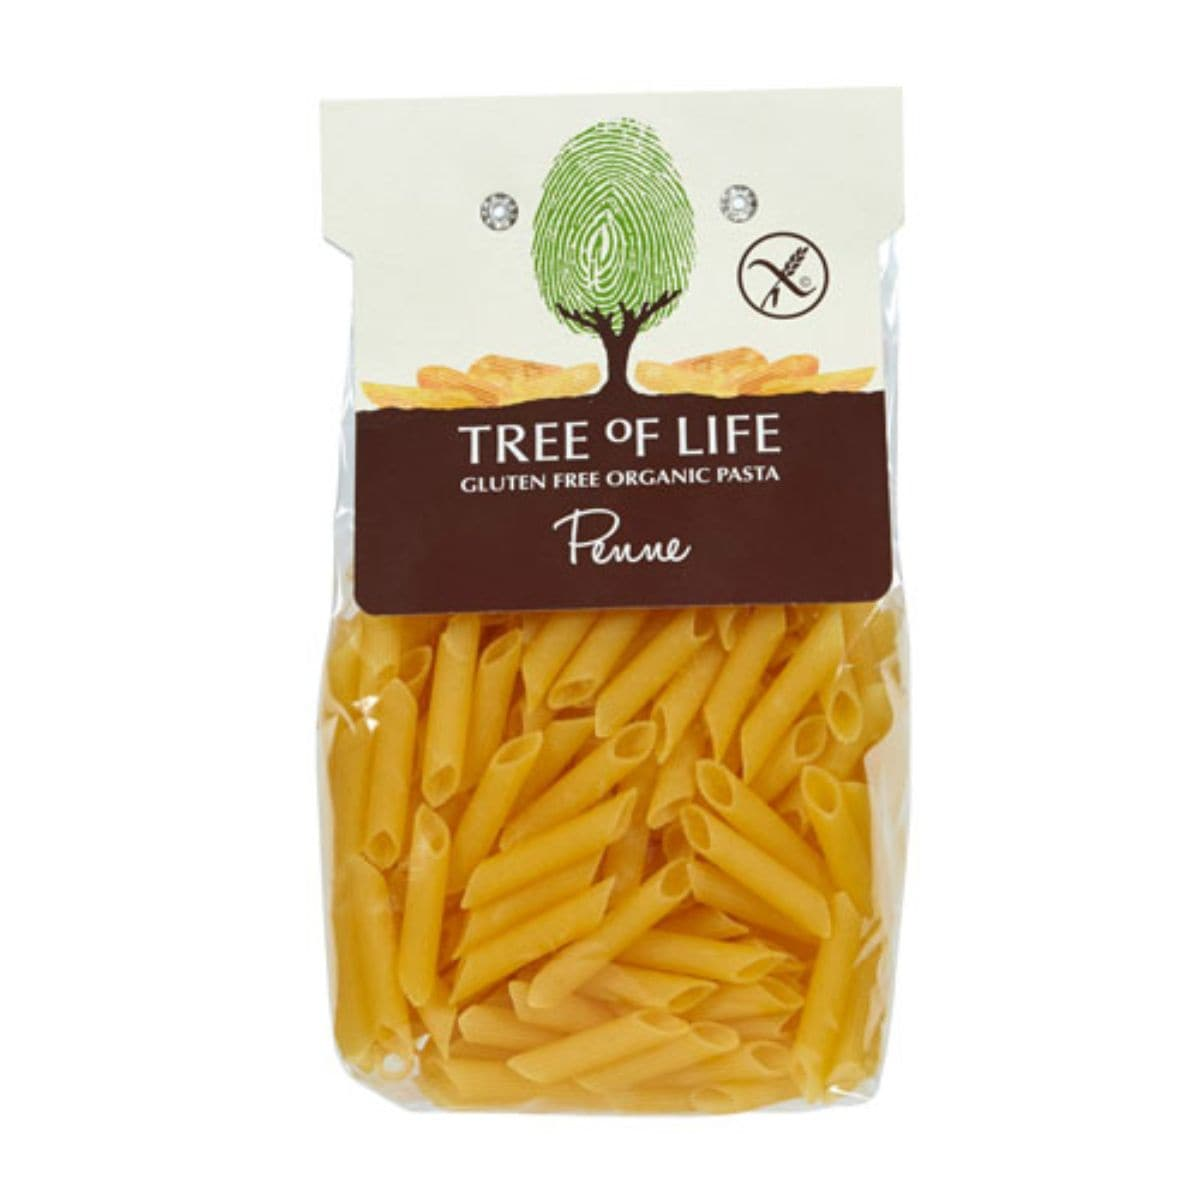 Tree Of Life Organic & Gluten Free Penne Pasta 400g - SoulBia